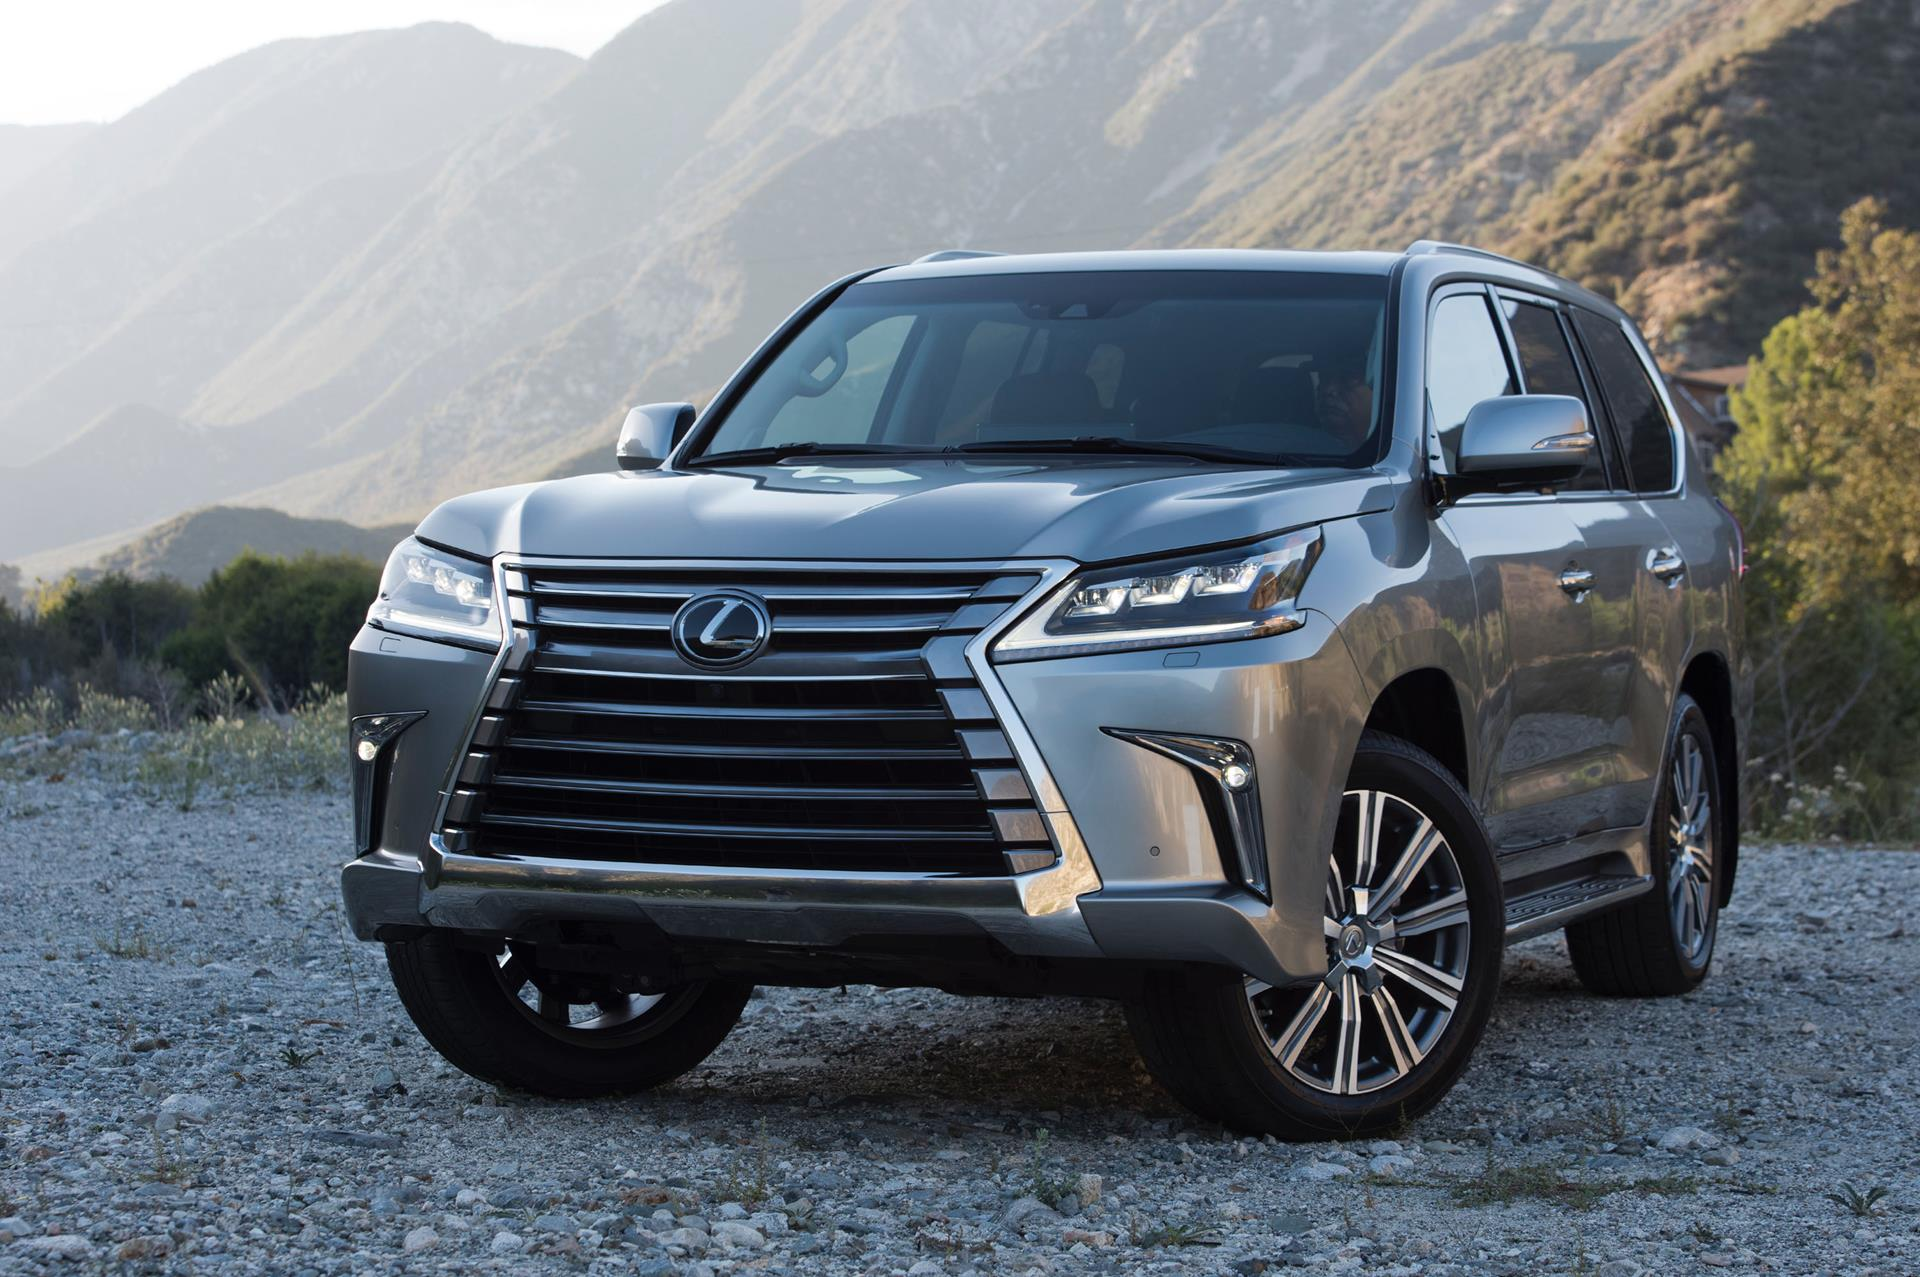 2016 lexus lx 570 technical specifications and data engine